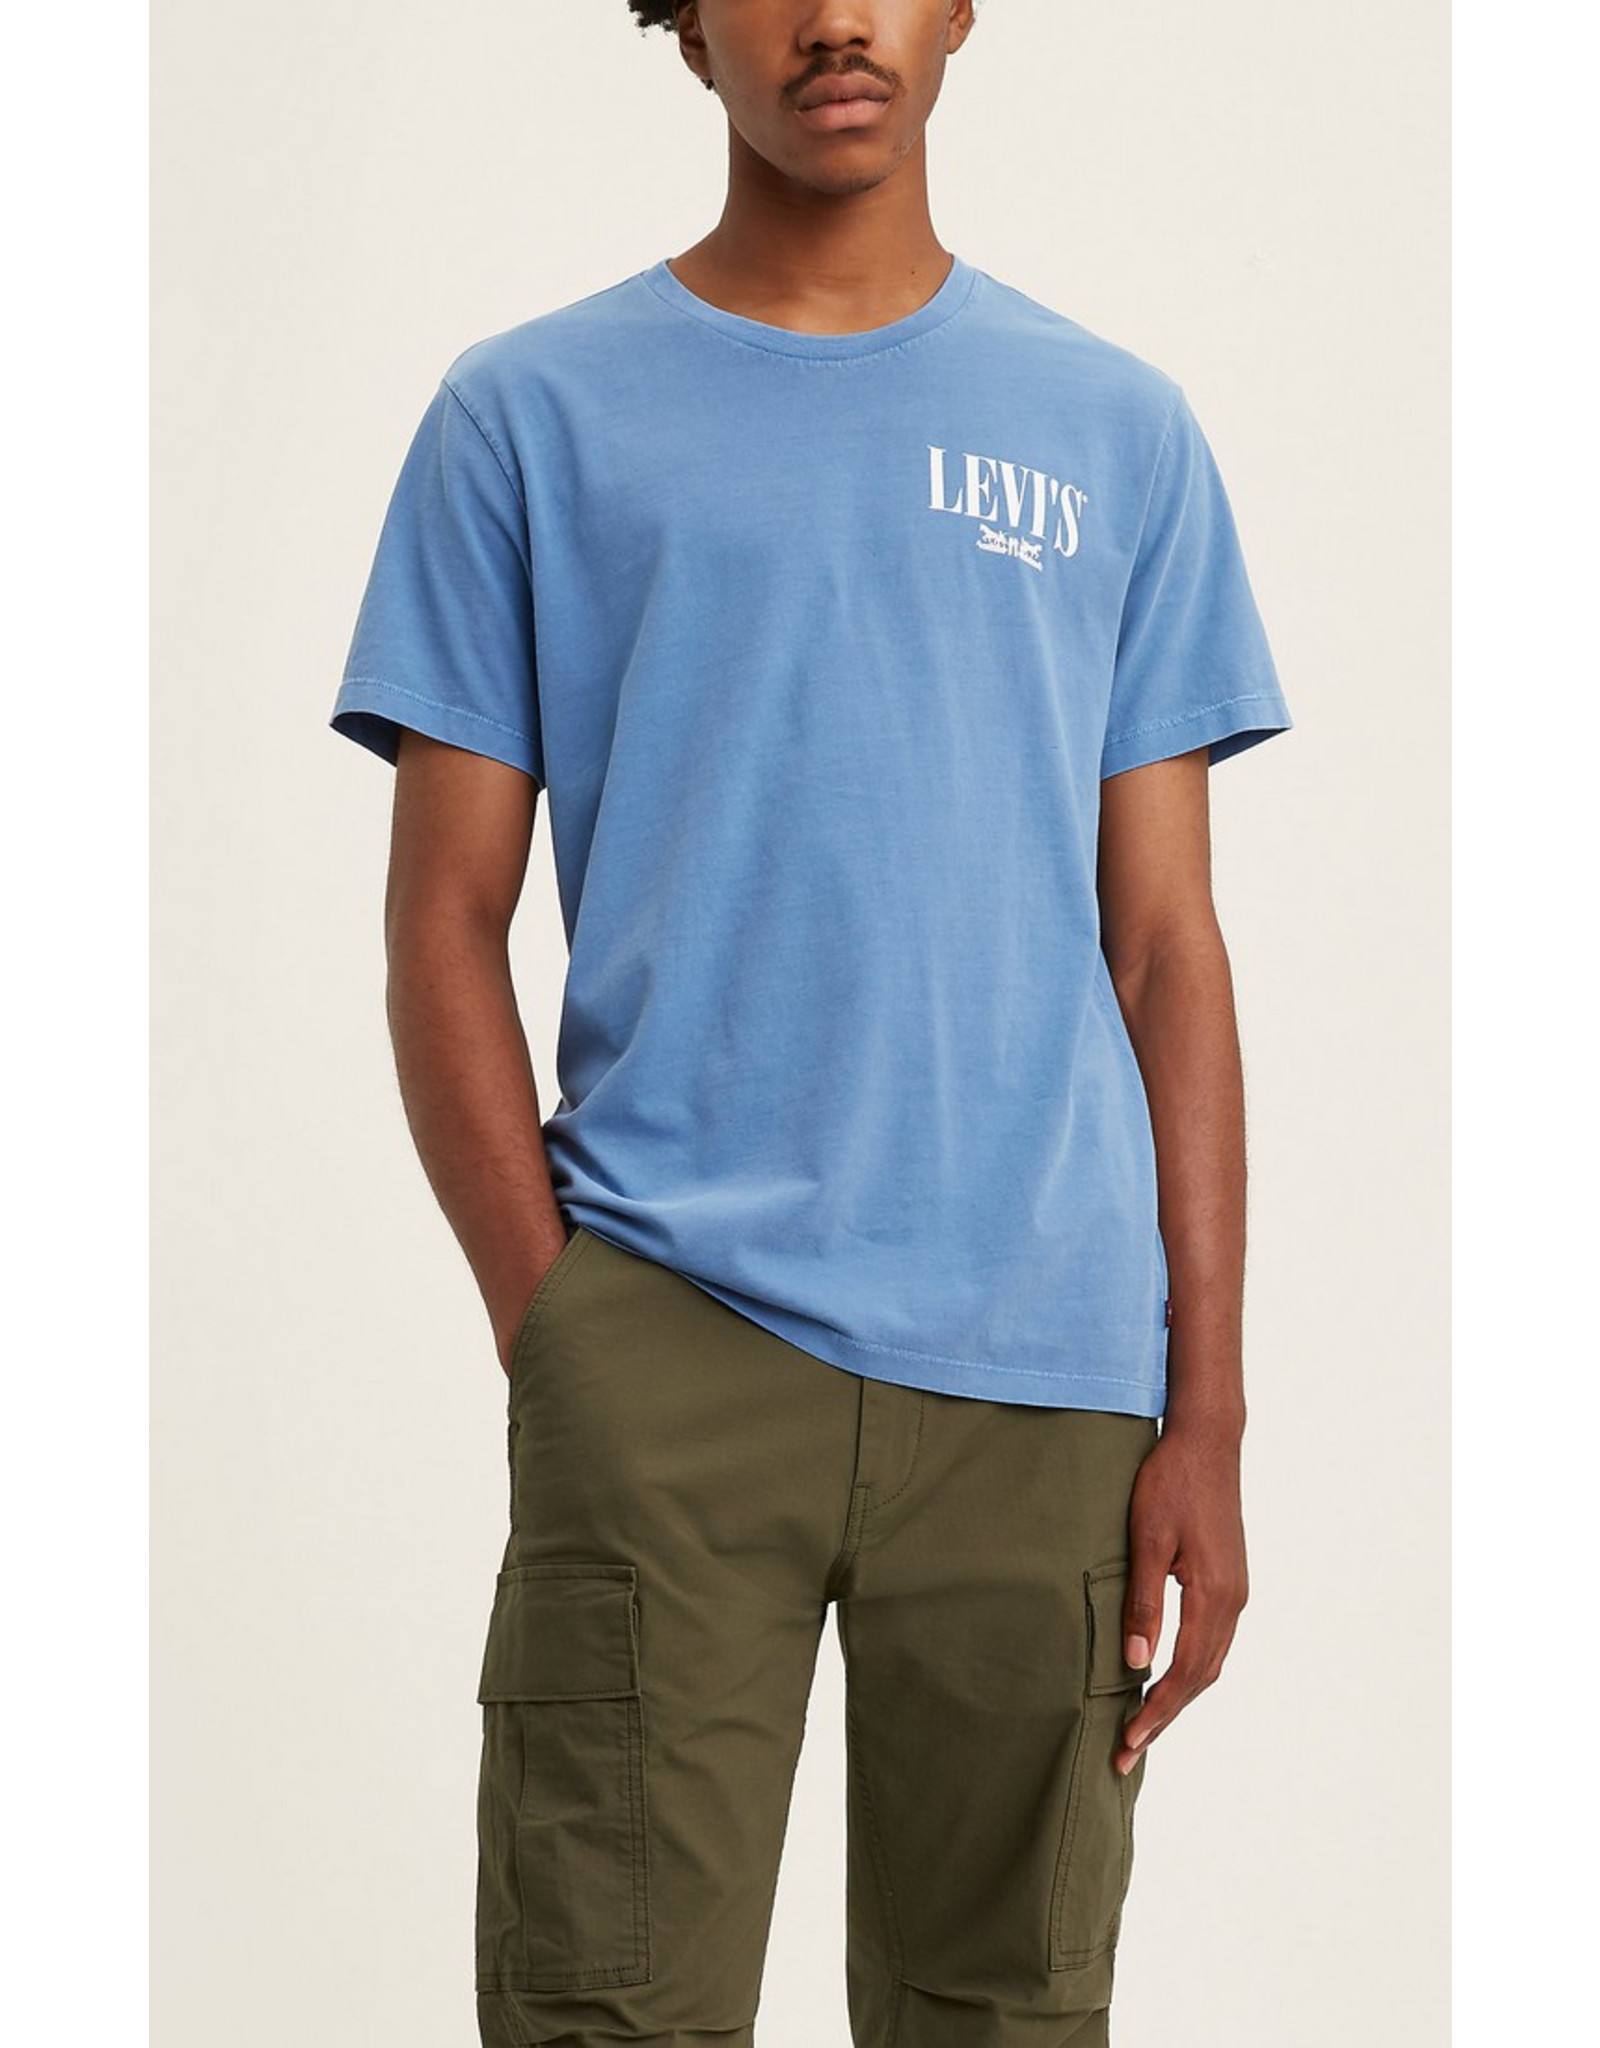 Levi's Levi's Standard Fit Graphic T-Shirt